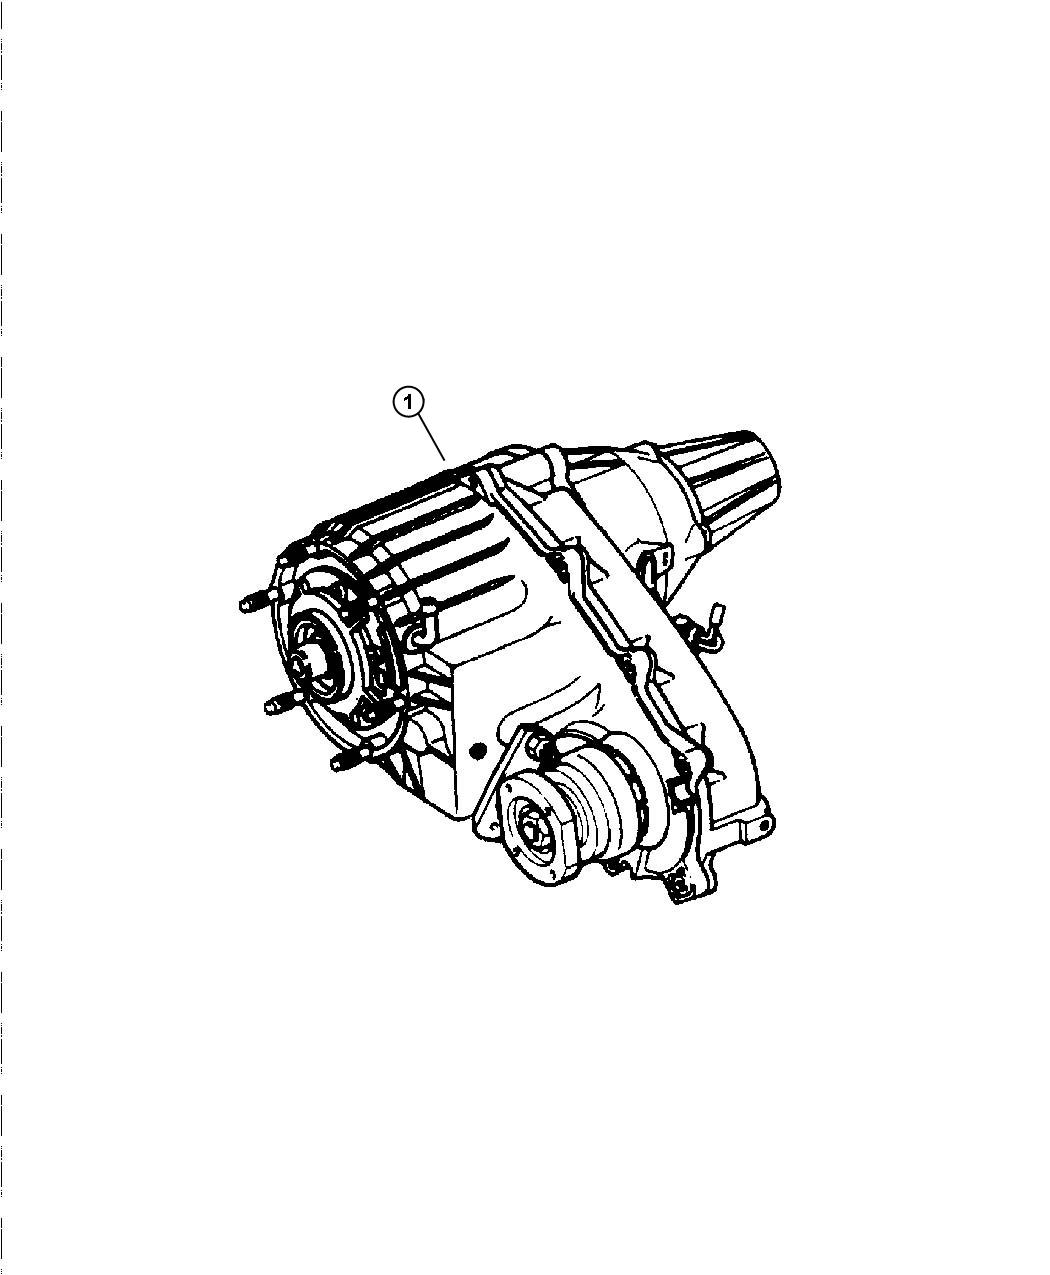 1999 Dodge 2500 Transfer Case Related Keywords & Suggestions